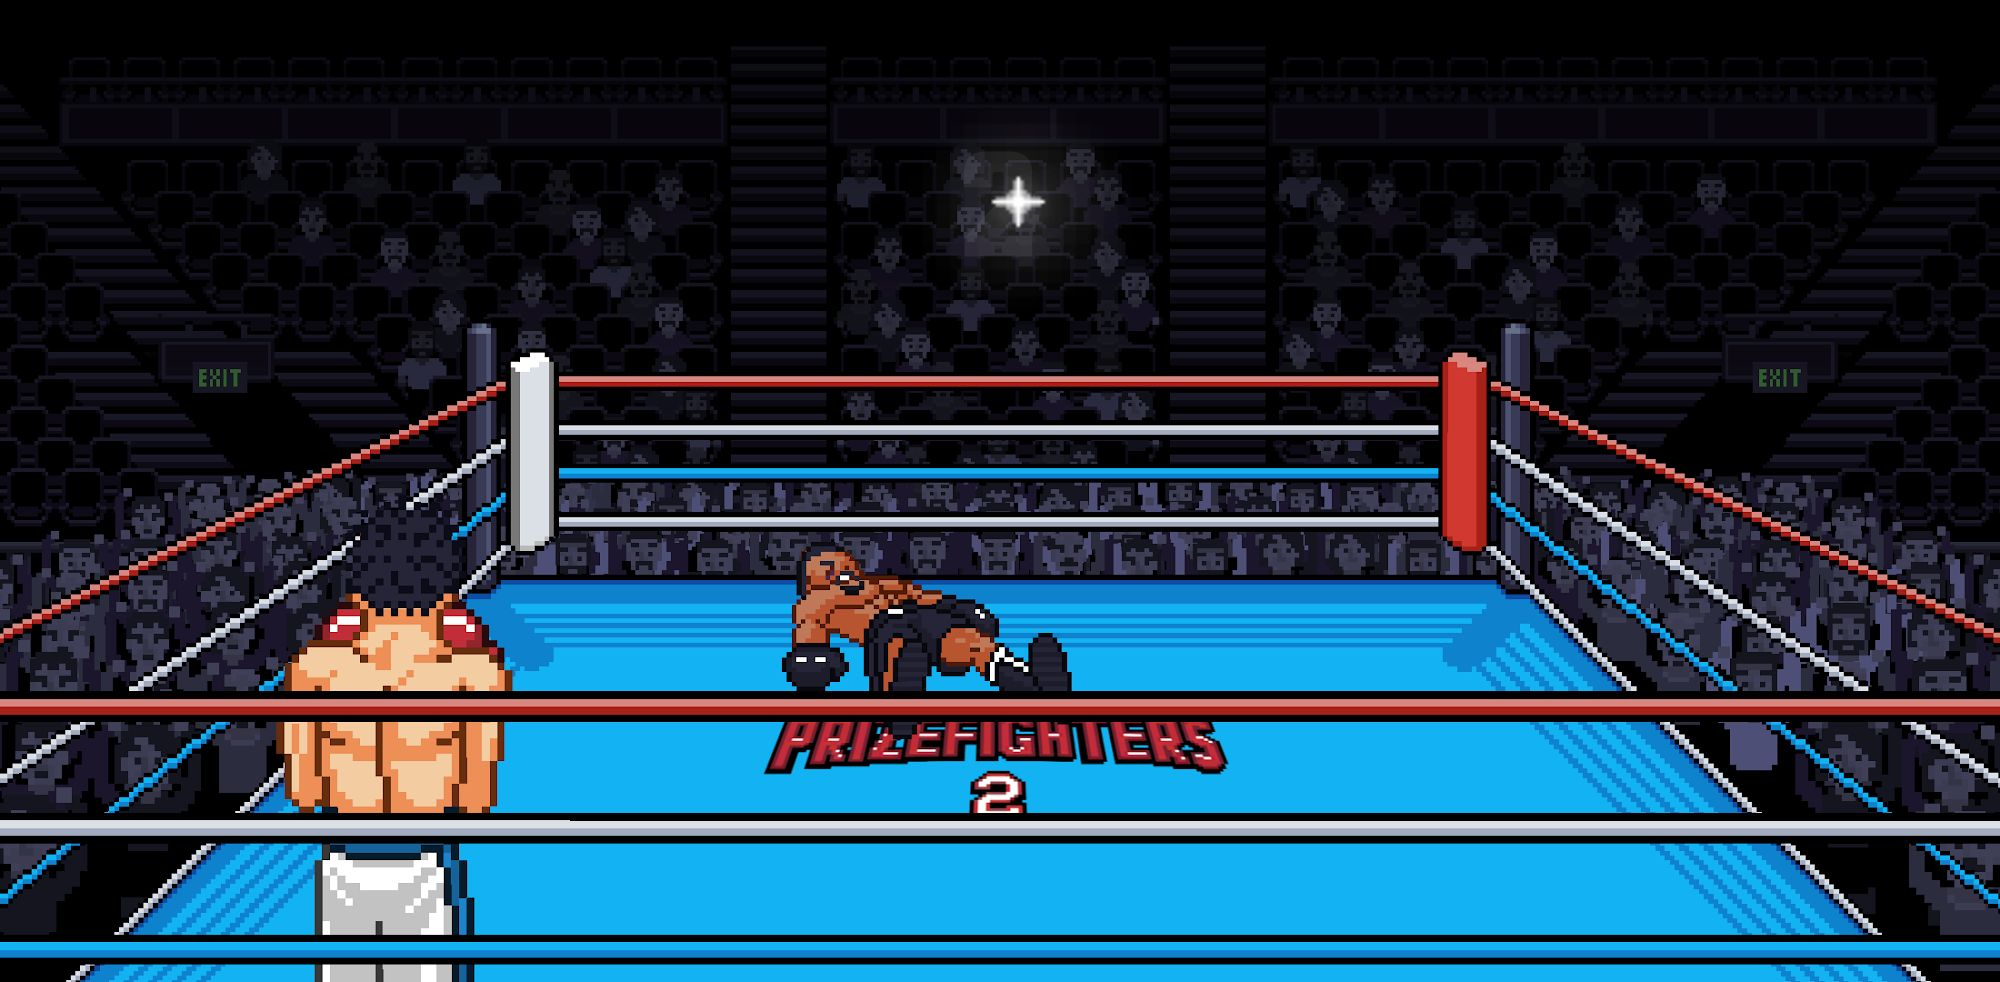 Prizefighters 2 captura de tela 1